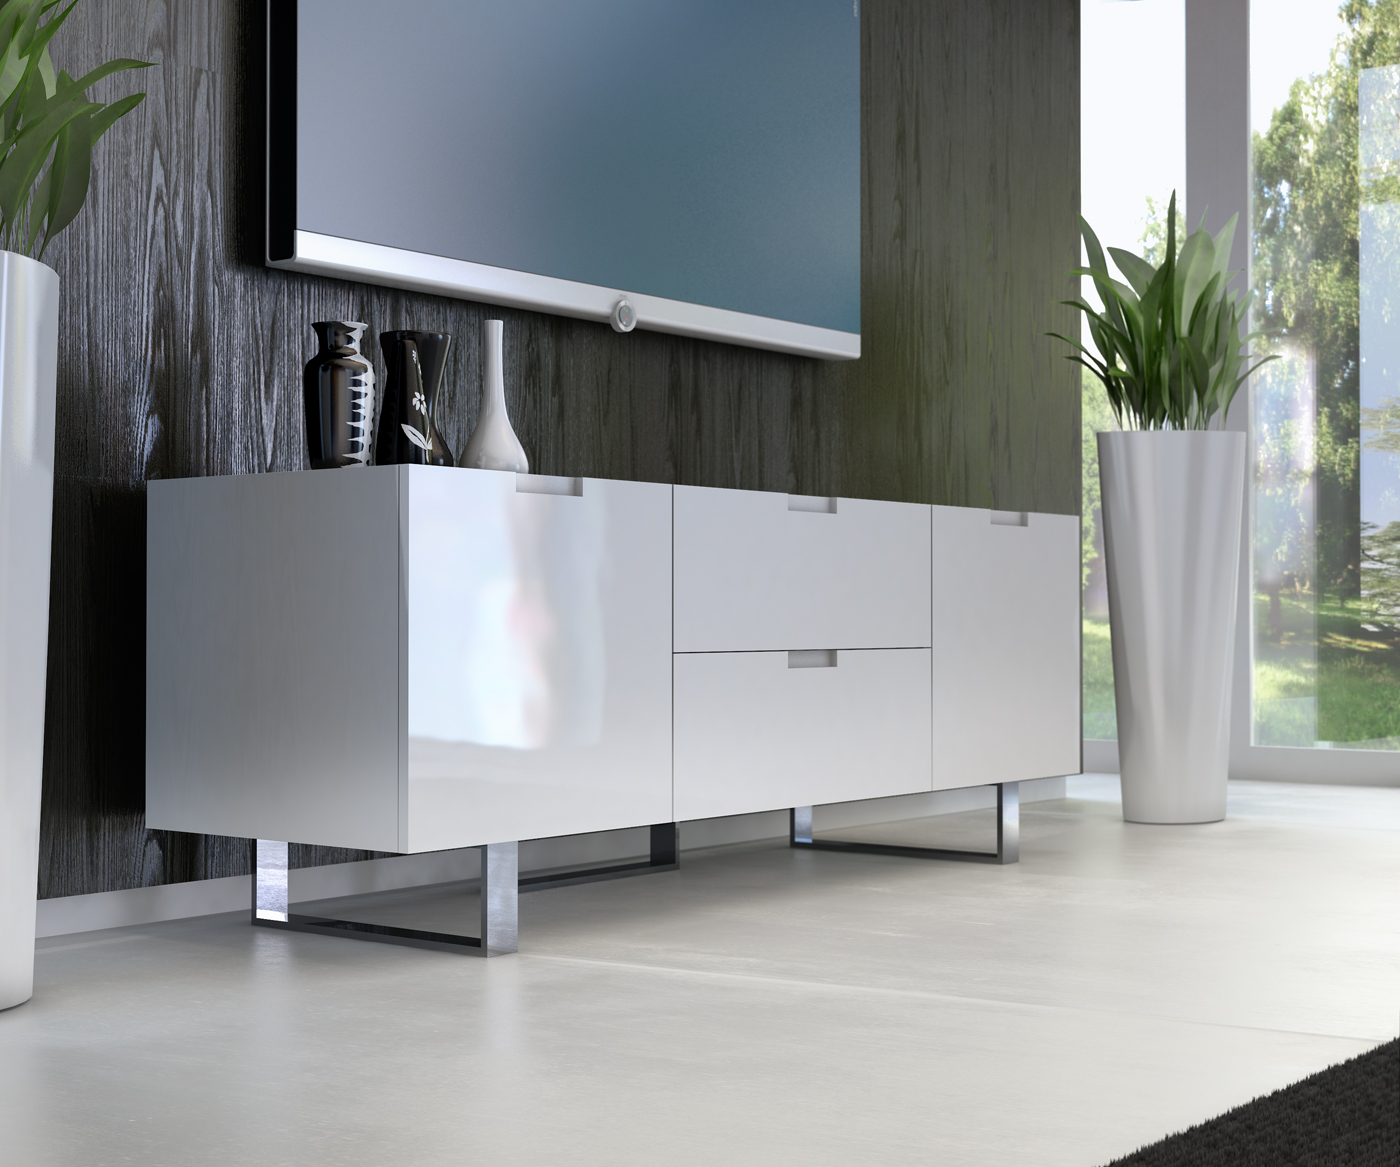 contemporary tv stand in wenge walnut or white lacquer san diego california mleld. Black Bedroom Furniture Sets. Home Design Ideas